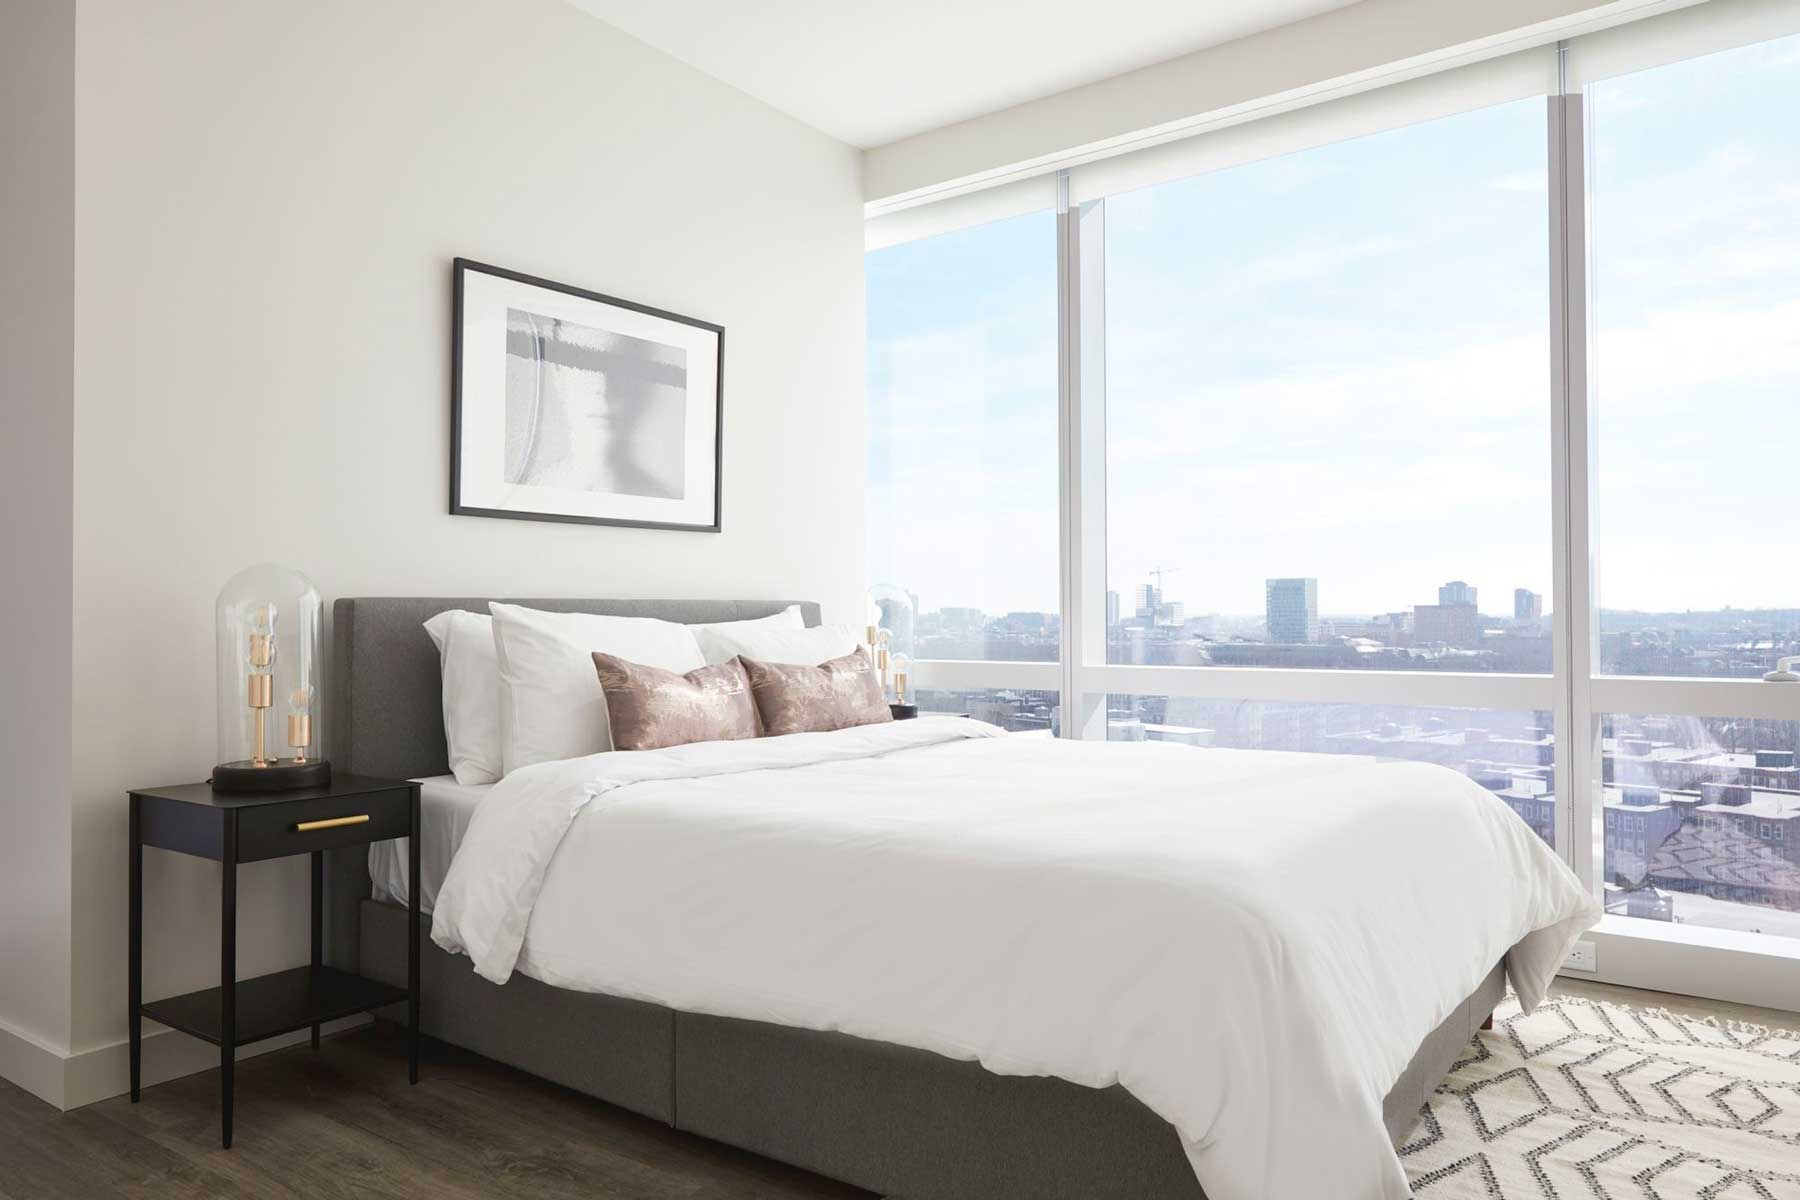 Bedroom with a view in Boston at Sonder Rental